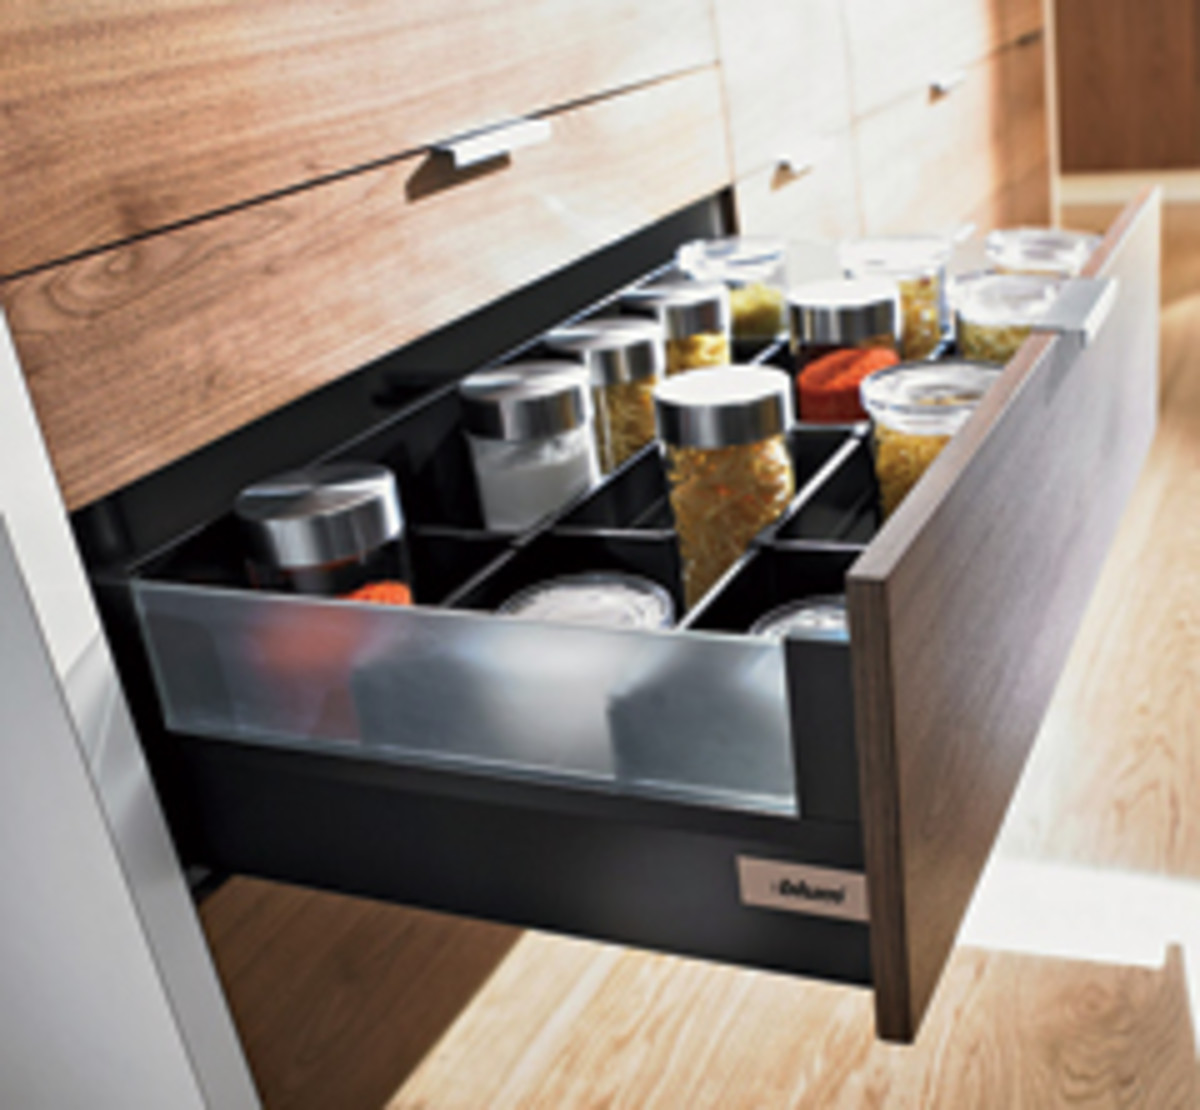 Tandembox intivo drawer systems from Blum.